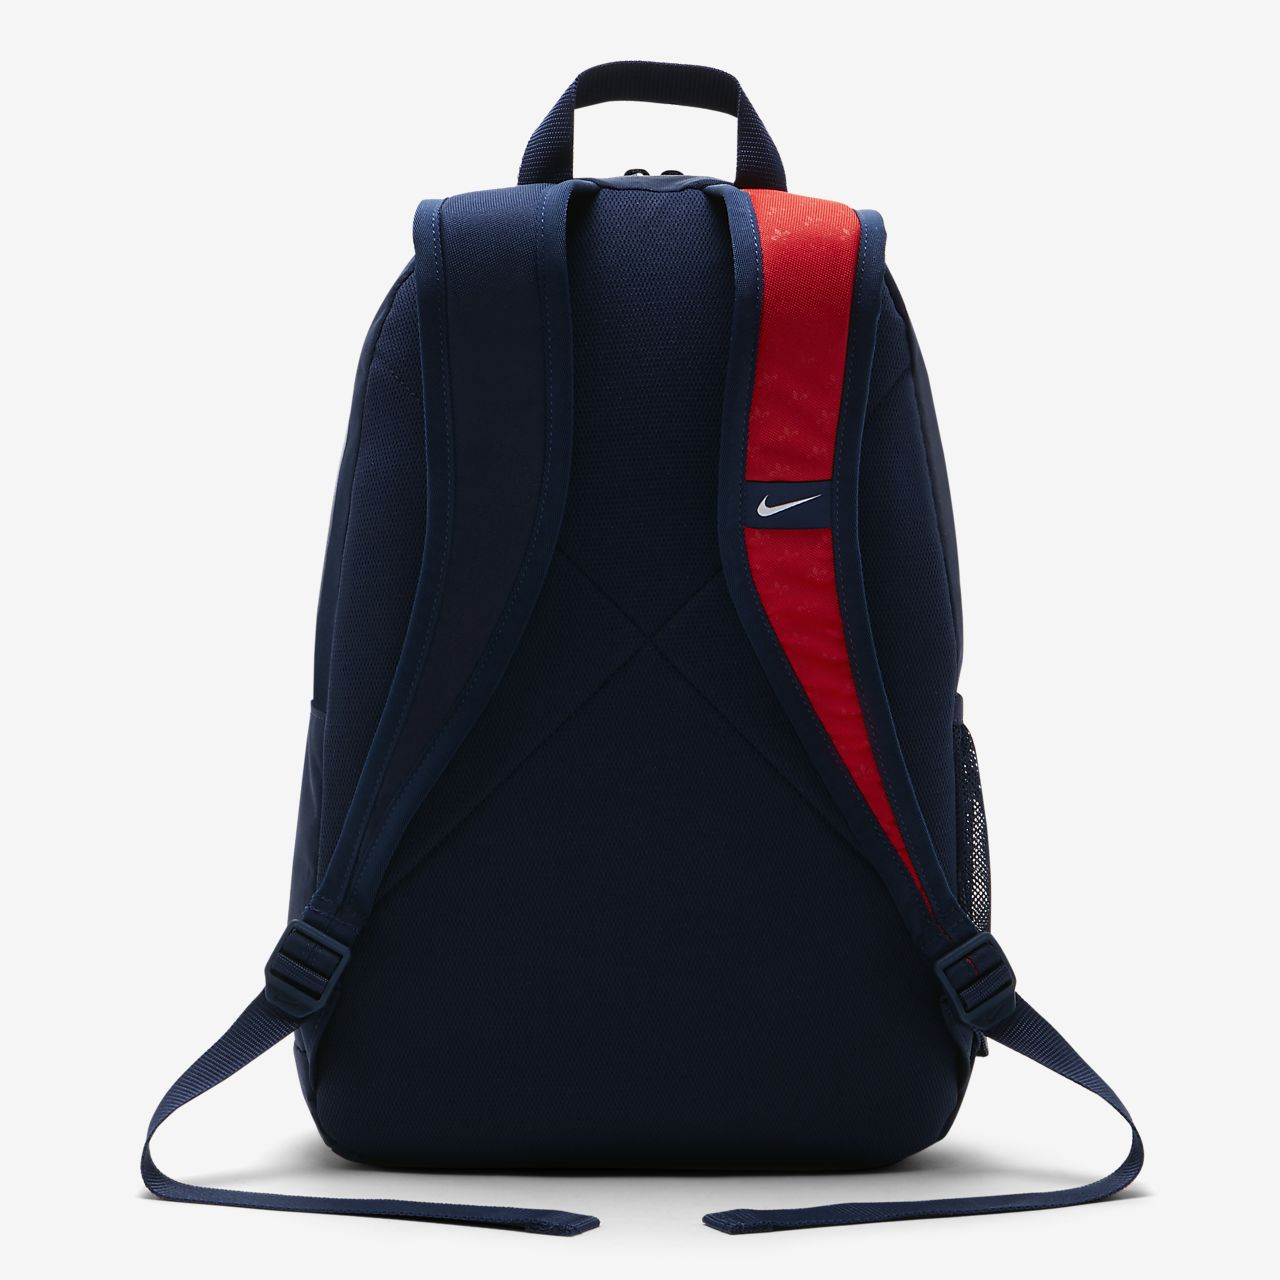 a4a89f42ed75 Paris Saint-Germain Stadium Kids  Football Backpack. Nike.com DK